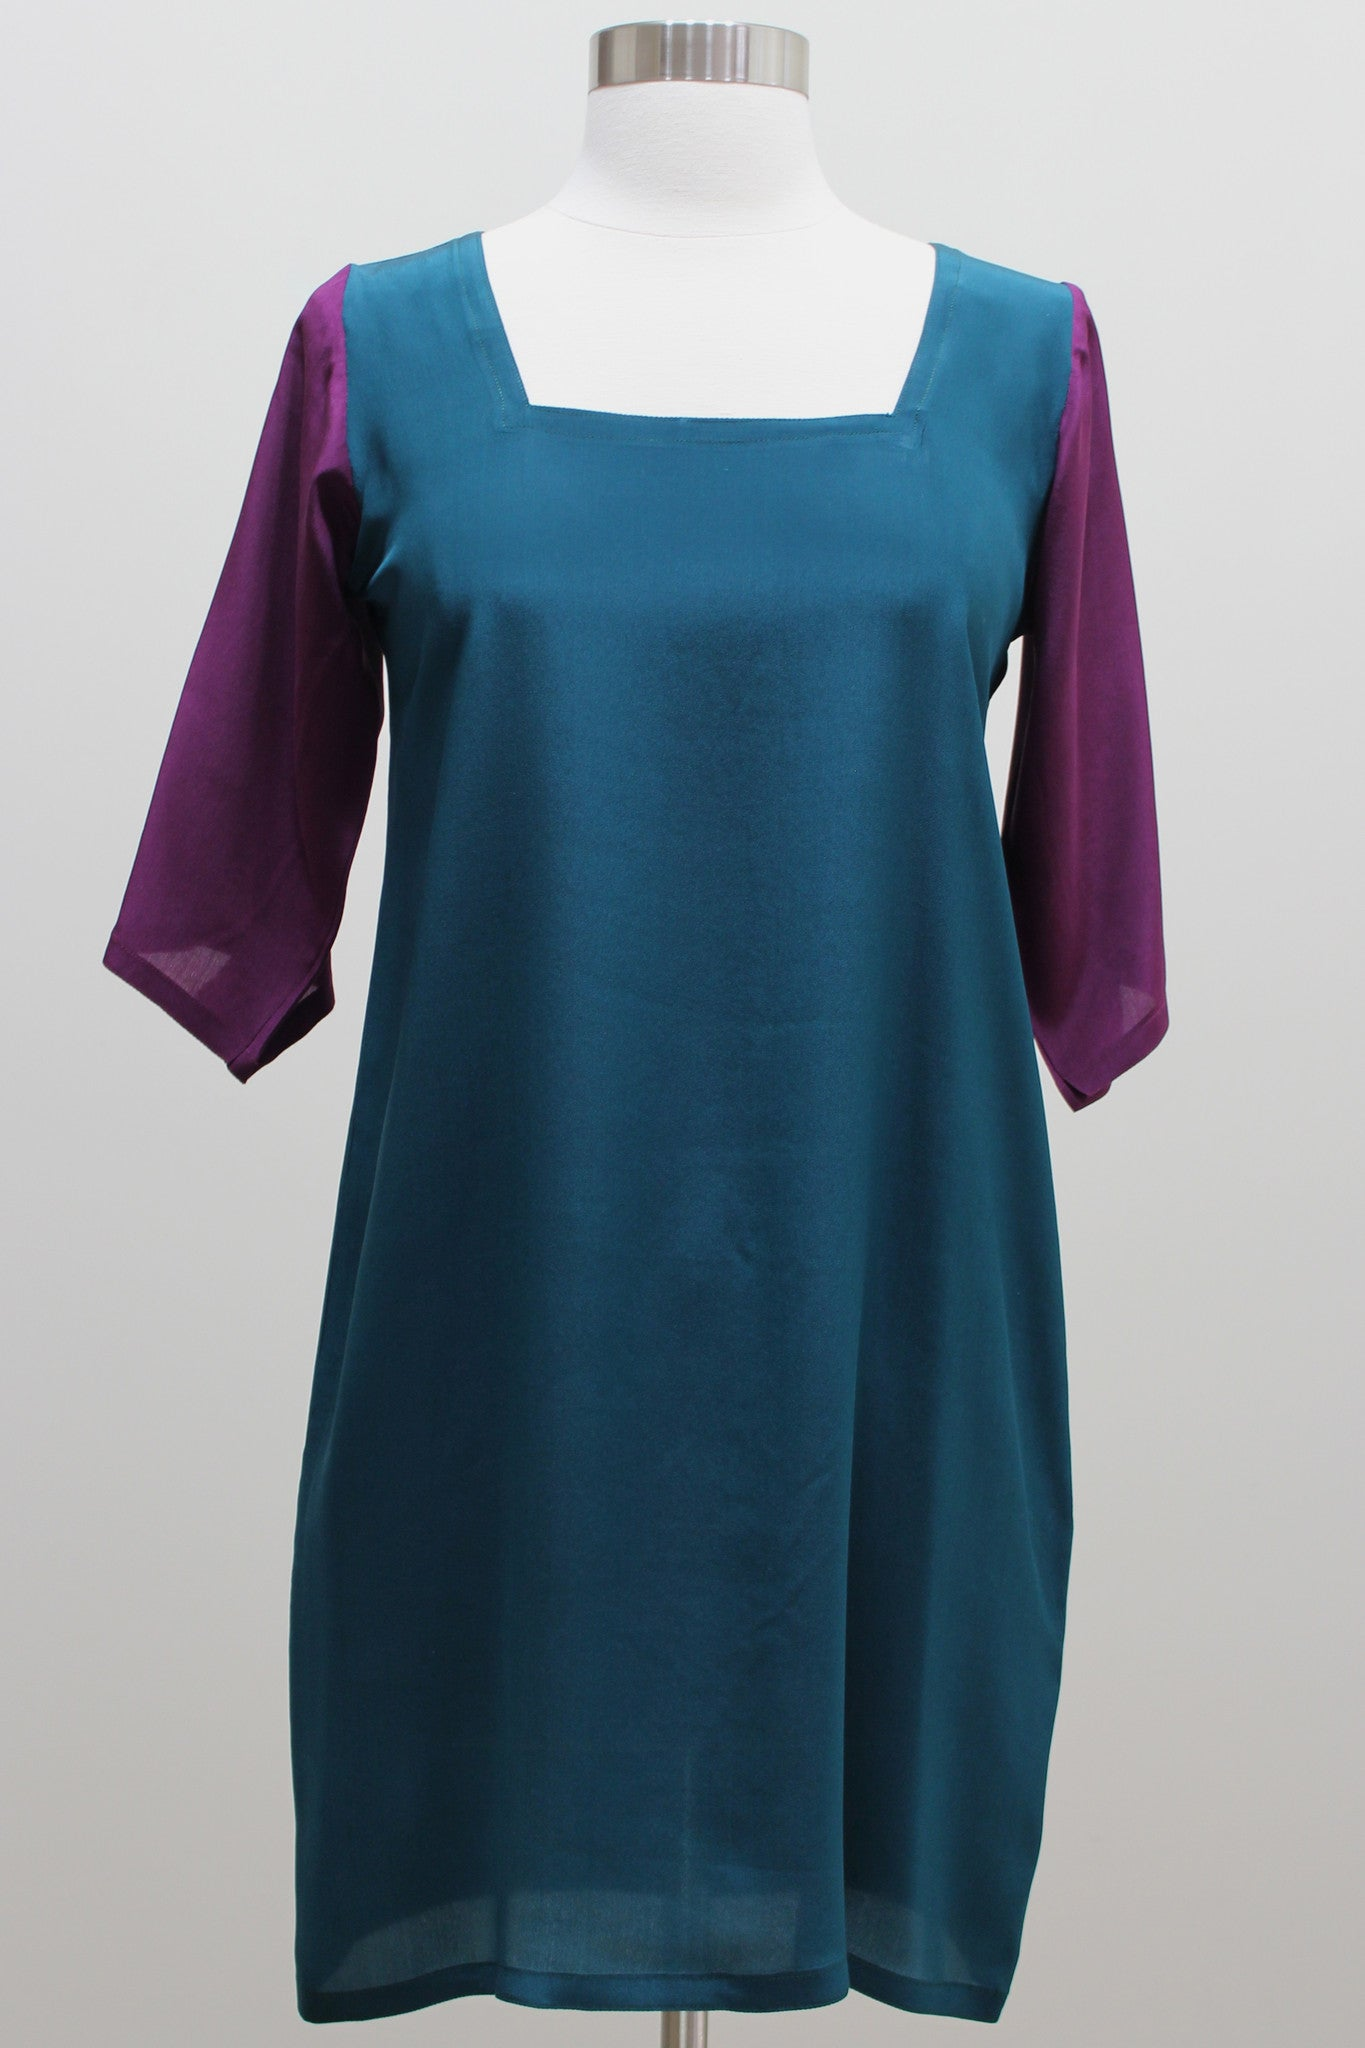 Silk Dress - Dark Emerald Green and Eggplant Colorblock